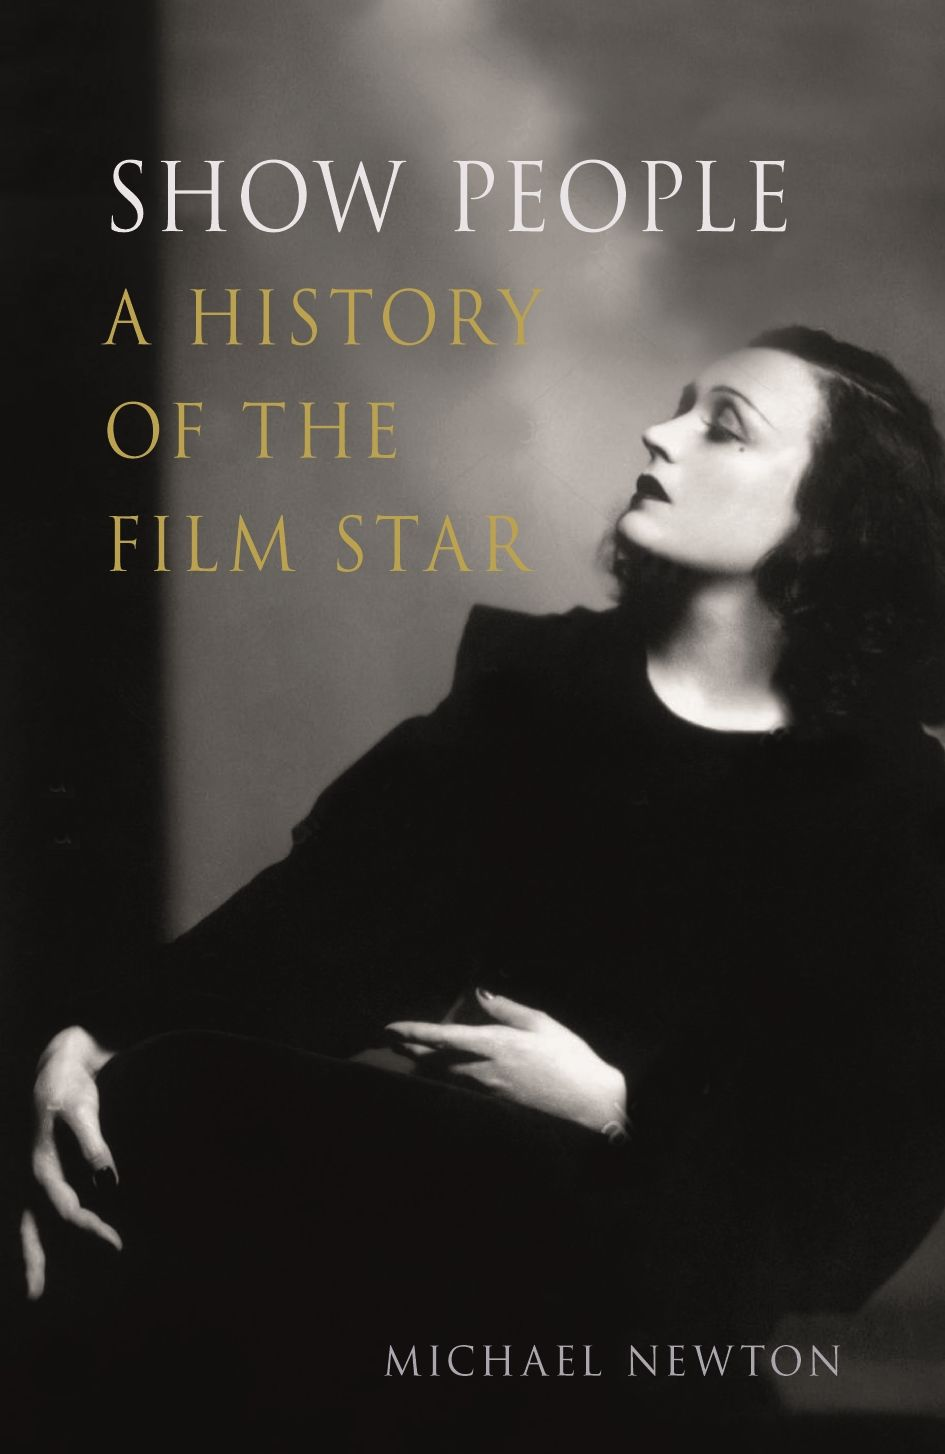 Show People: A History of the Film Star